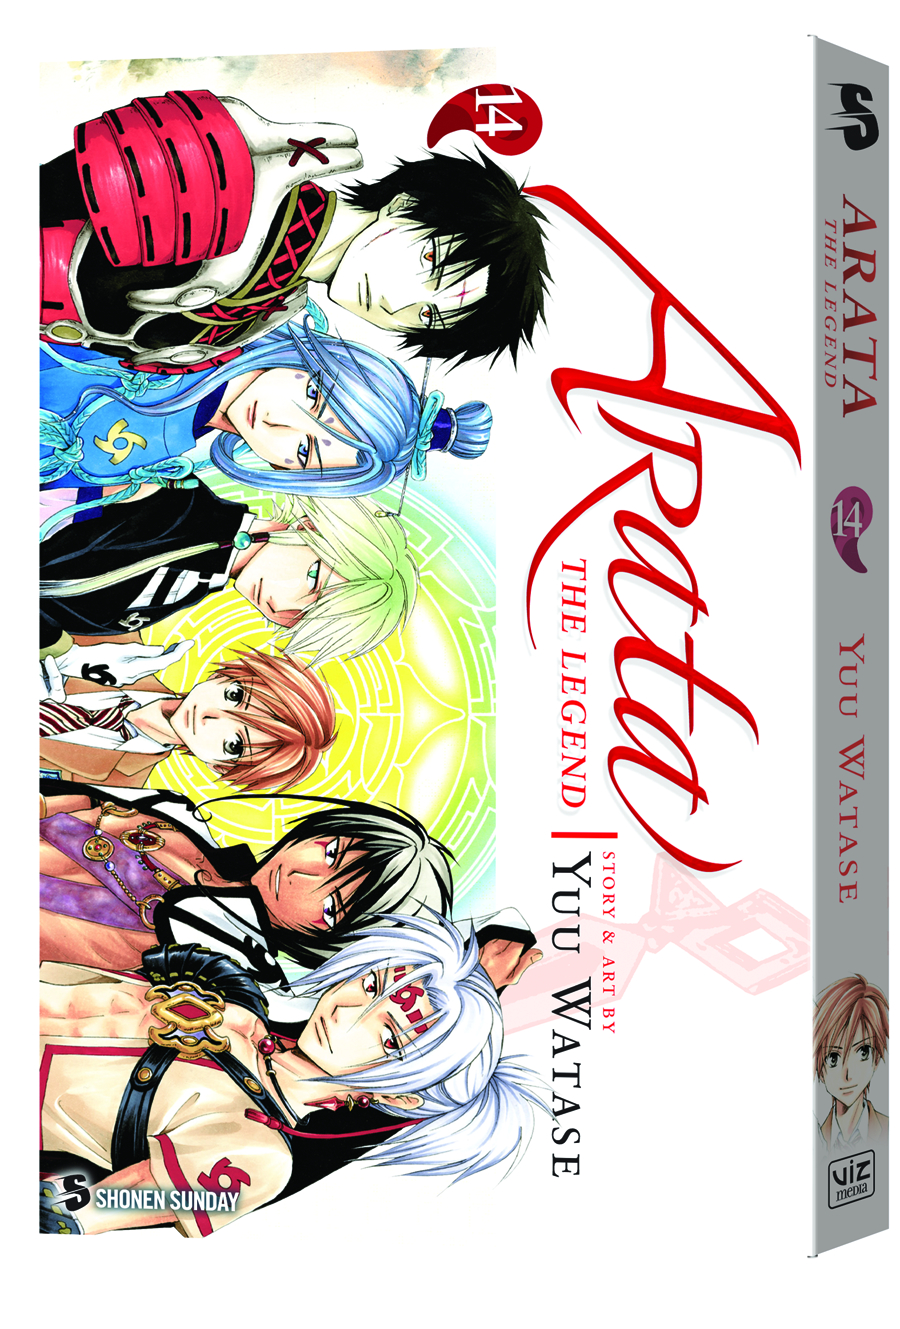 ARATA THE LEGEND GN VOL 14